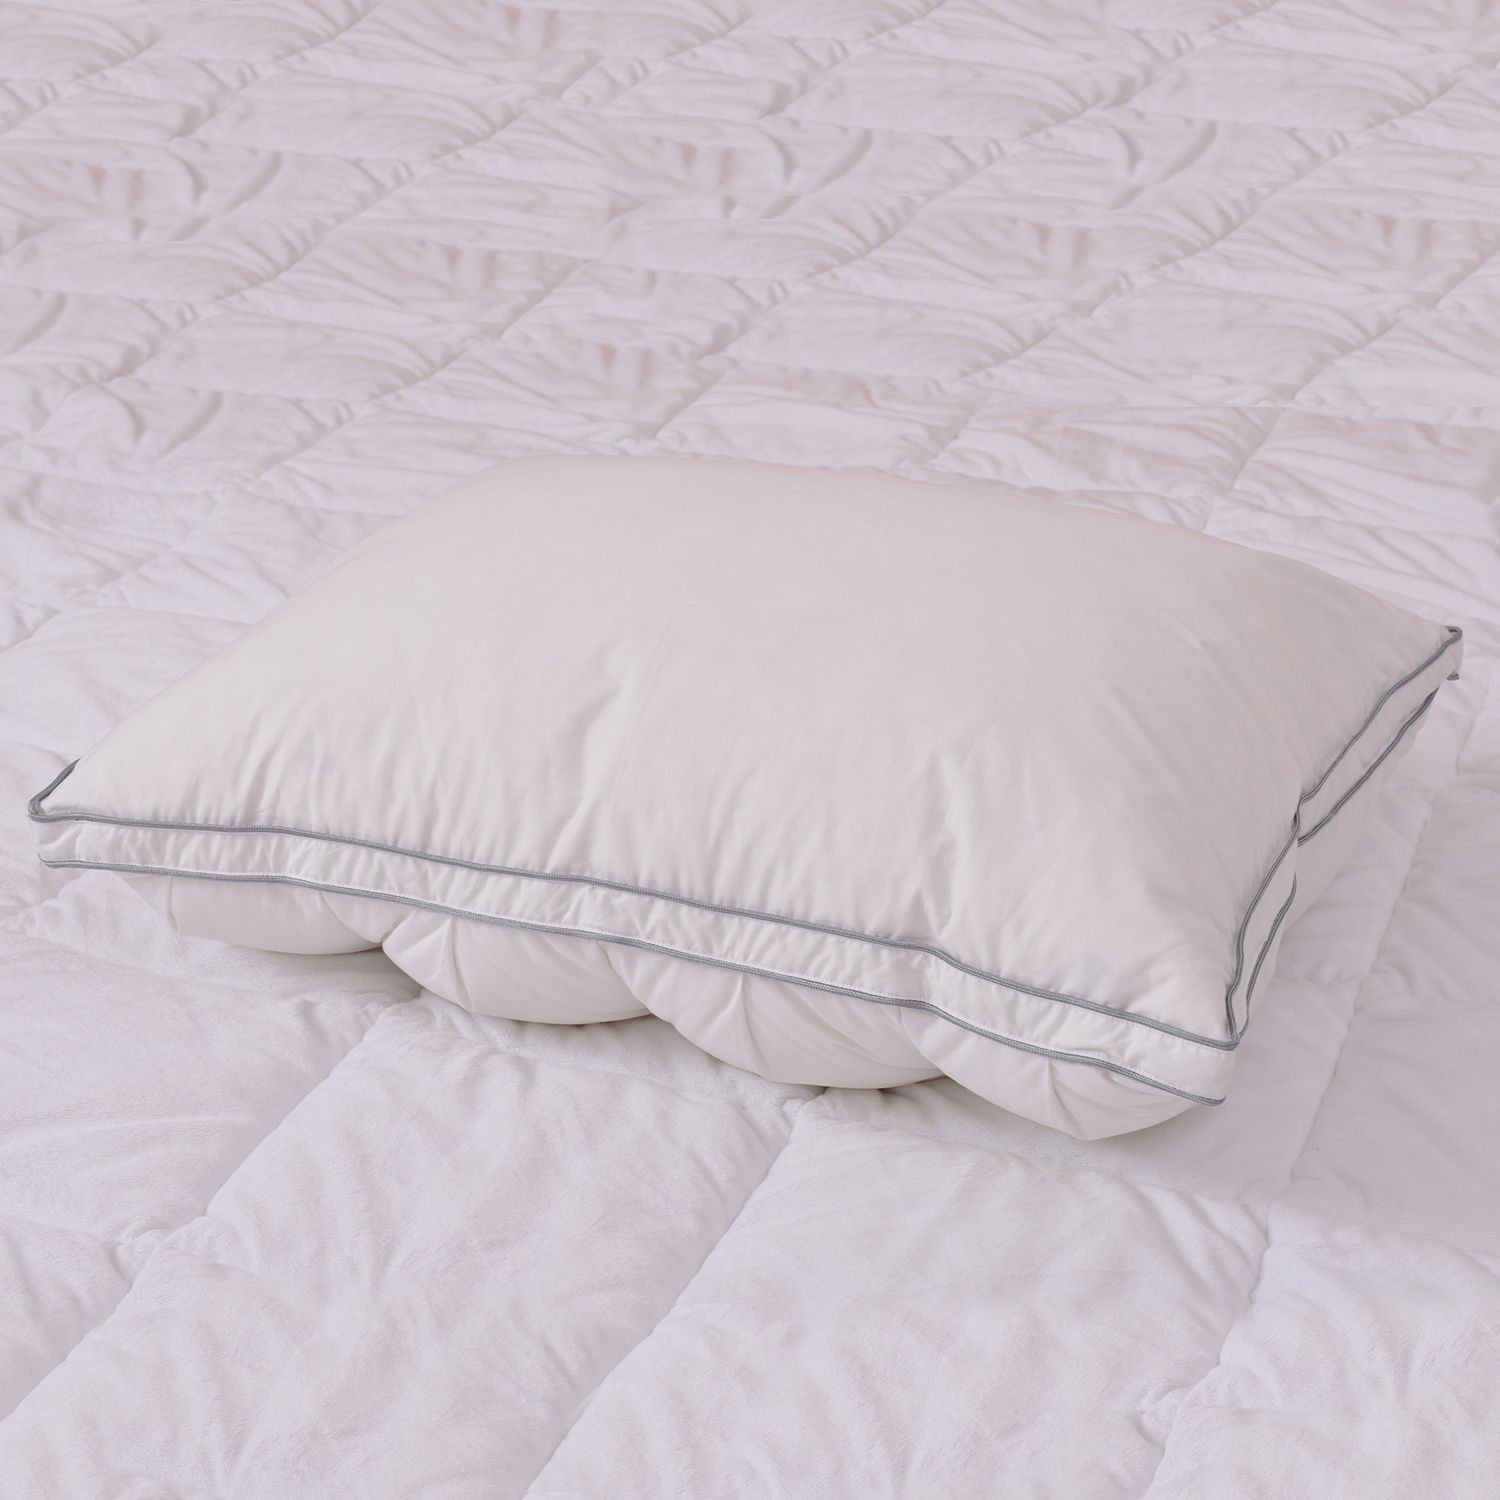 pin tuck dual core hypoallergenic pillow 20x26 in gray piping